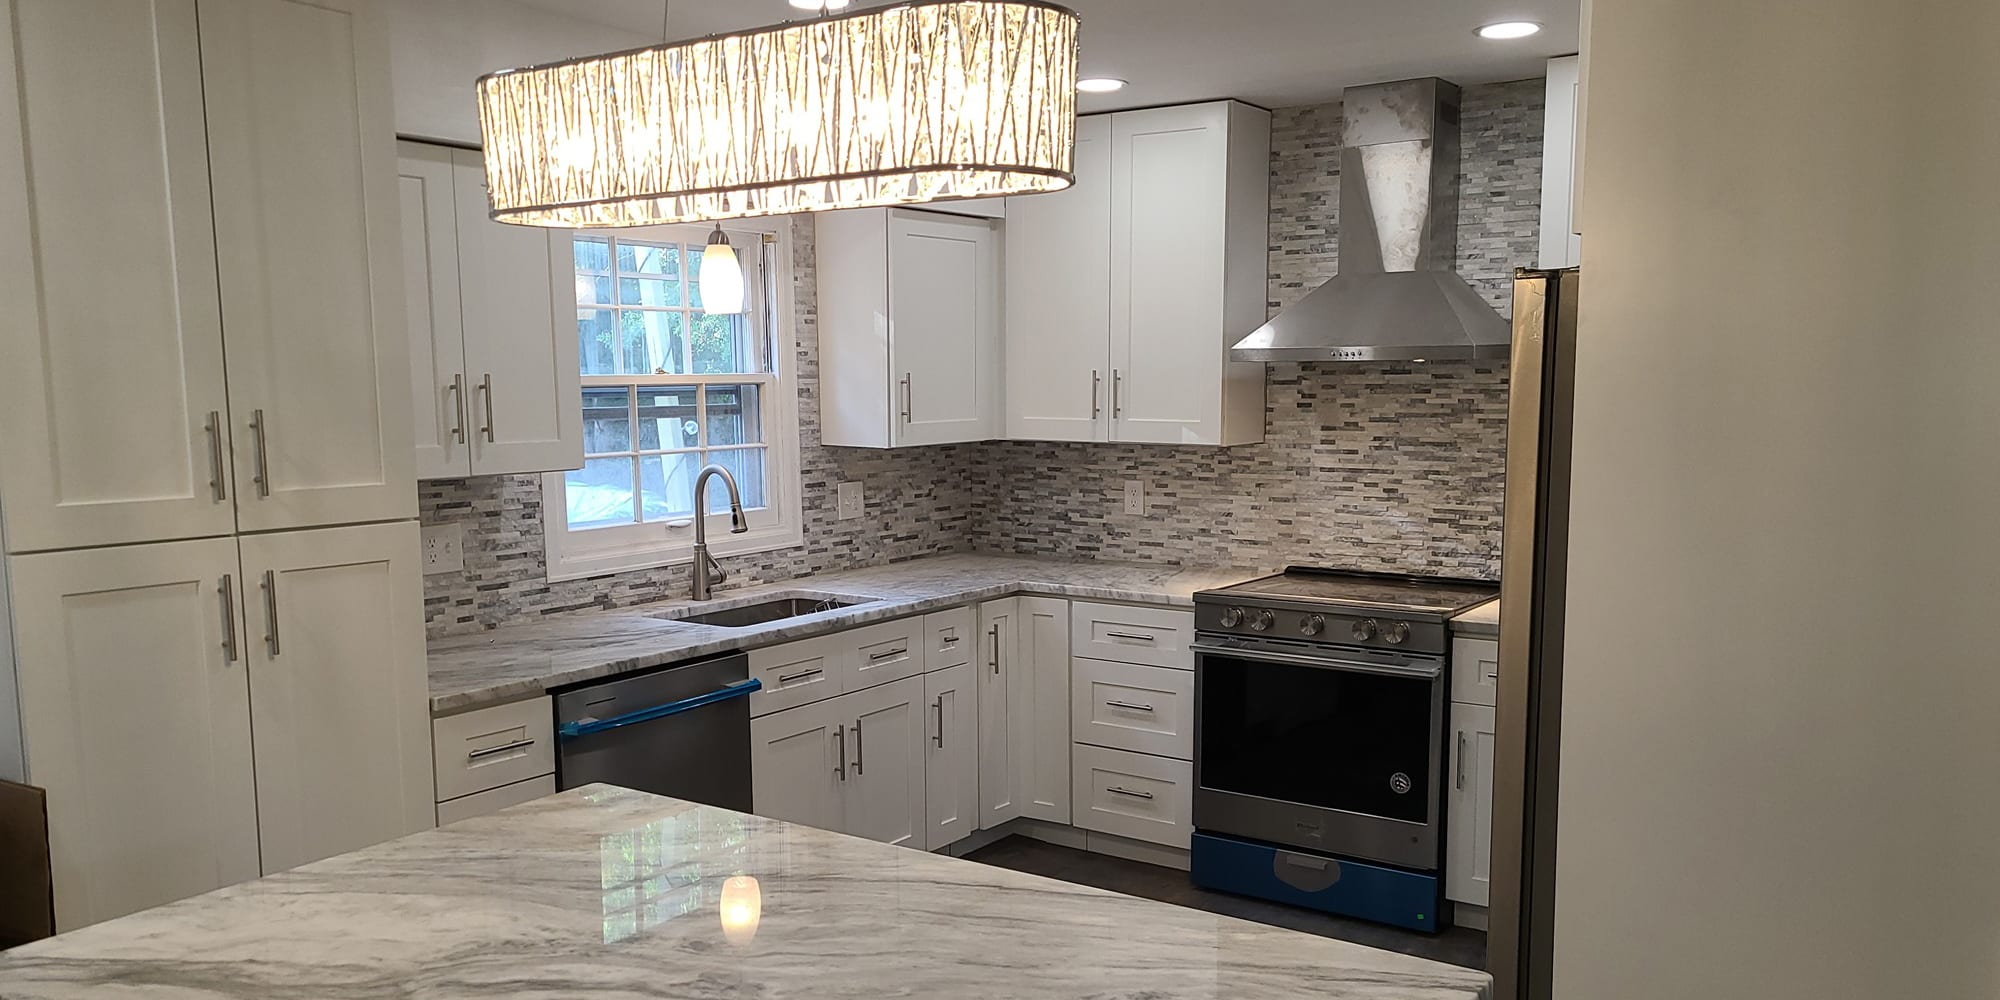 White cabinets, grey and white marble top with grey appliances with blue trim kitchen